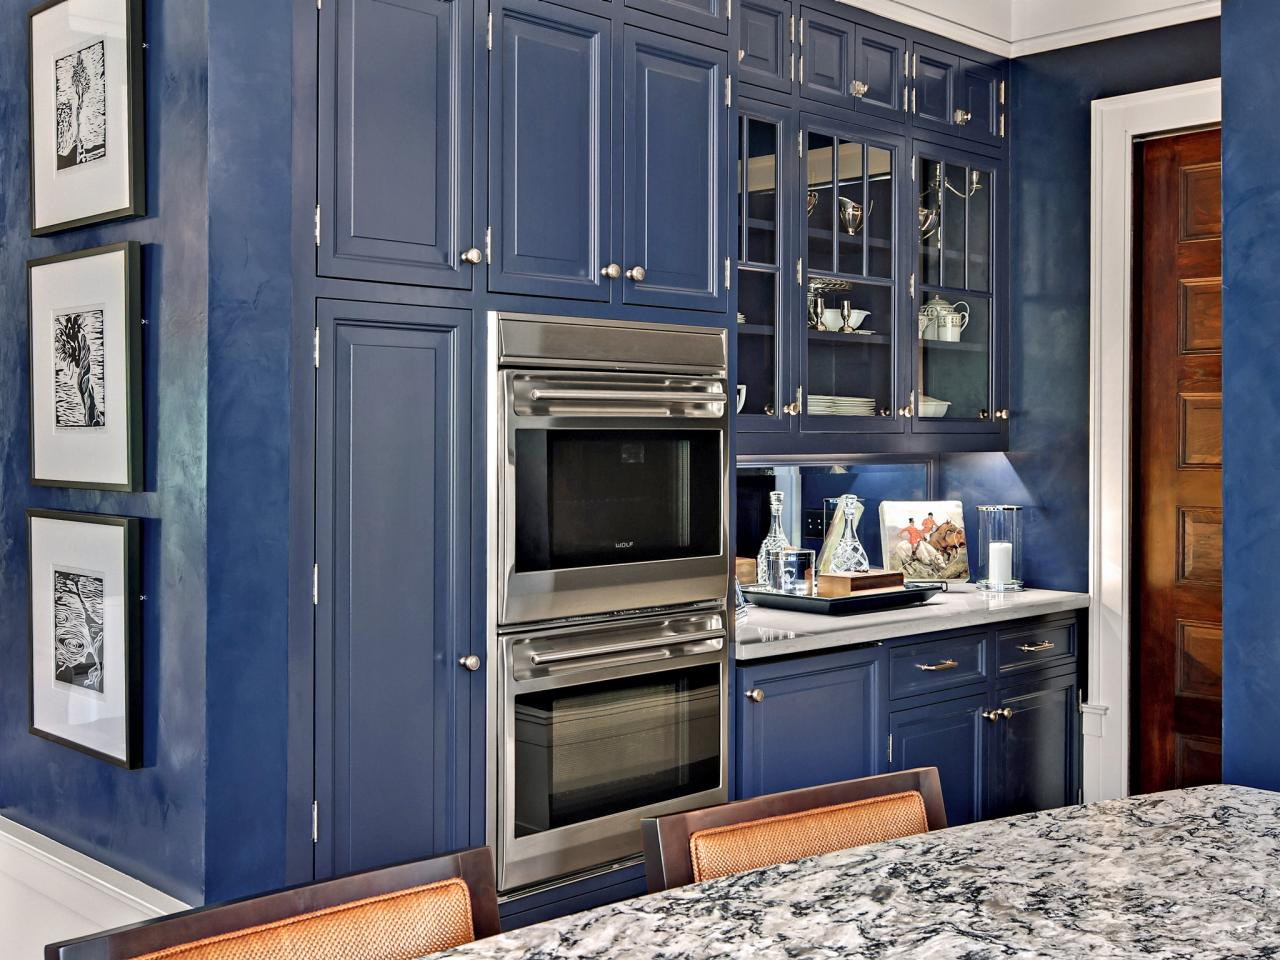 30 colorful kitchen design ideas from hgtv kitchen ideas for Dark blue kitchen cabinets